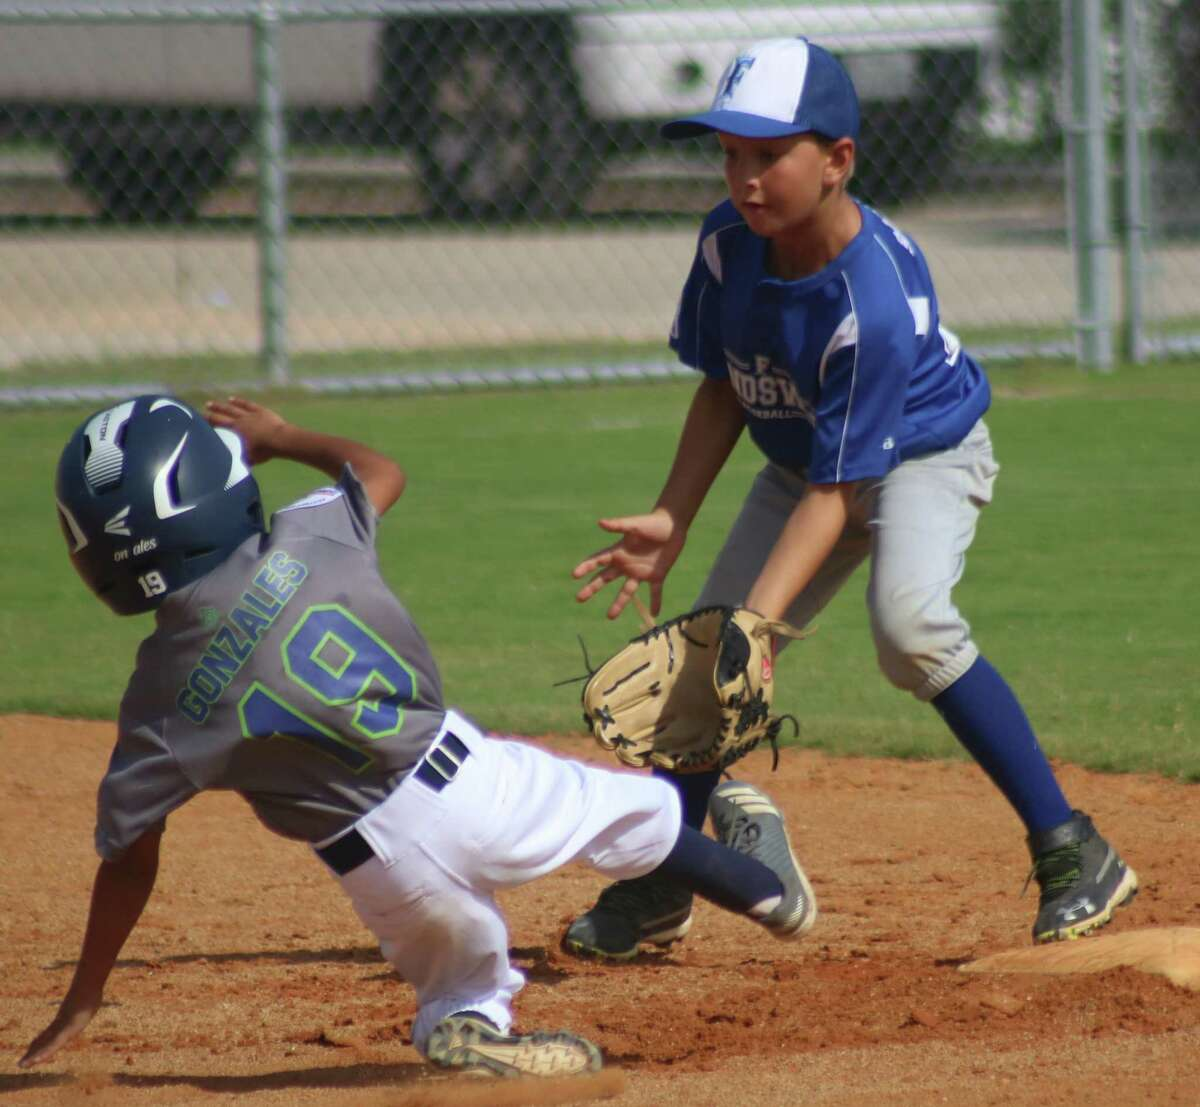 There was plenty of action around second base Saturday morning as Friendswood Blue's defense up the middle was top-notch.